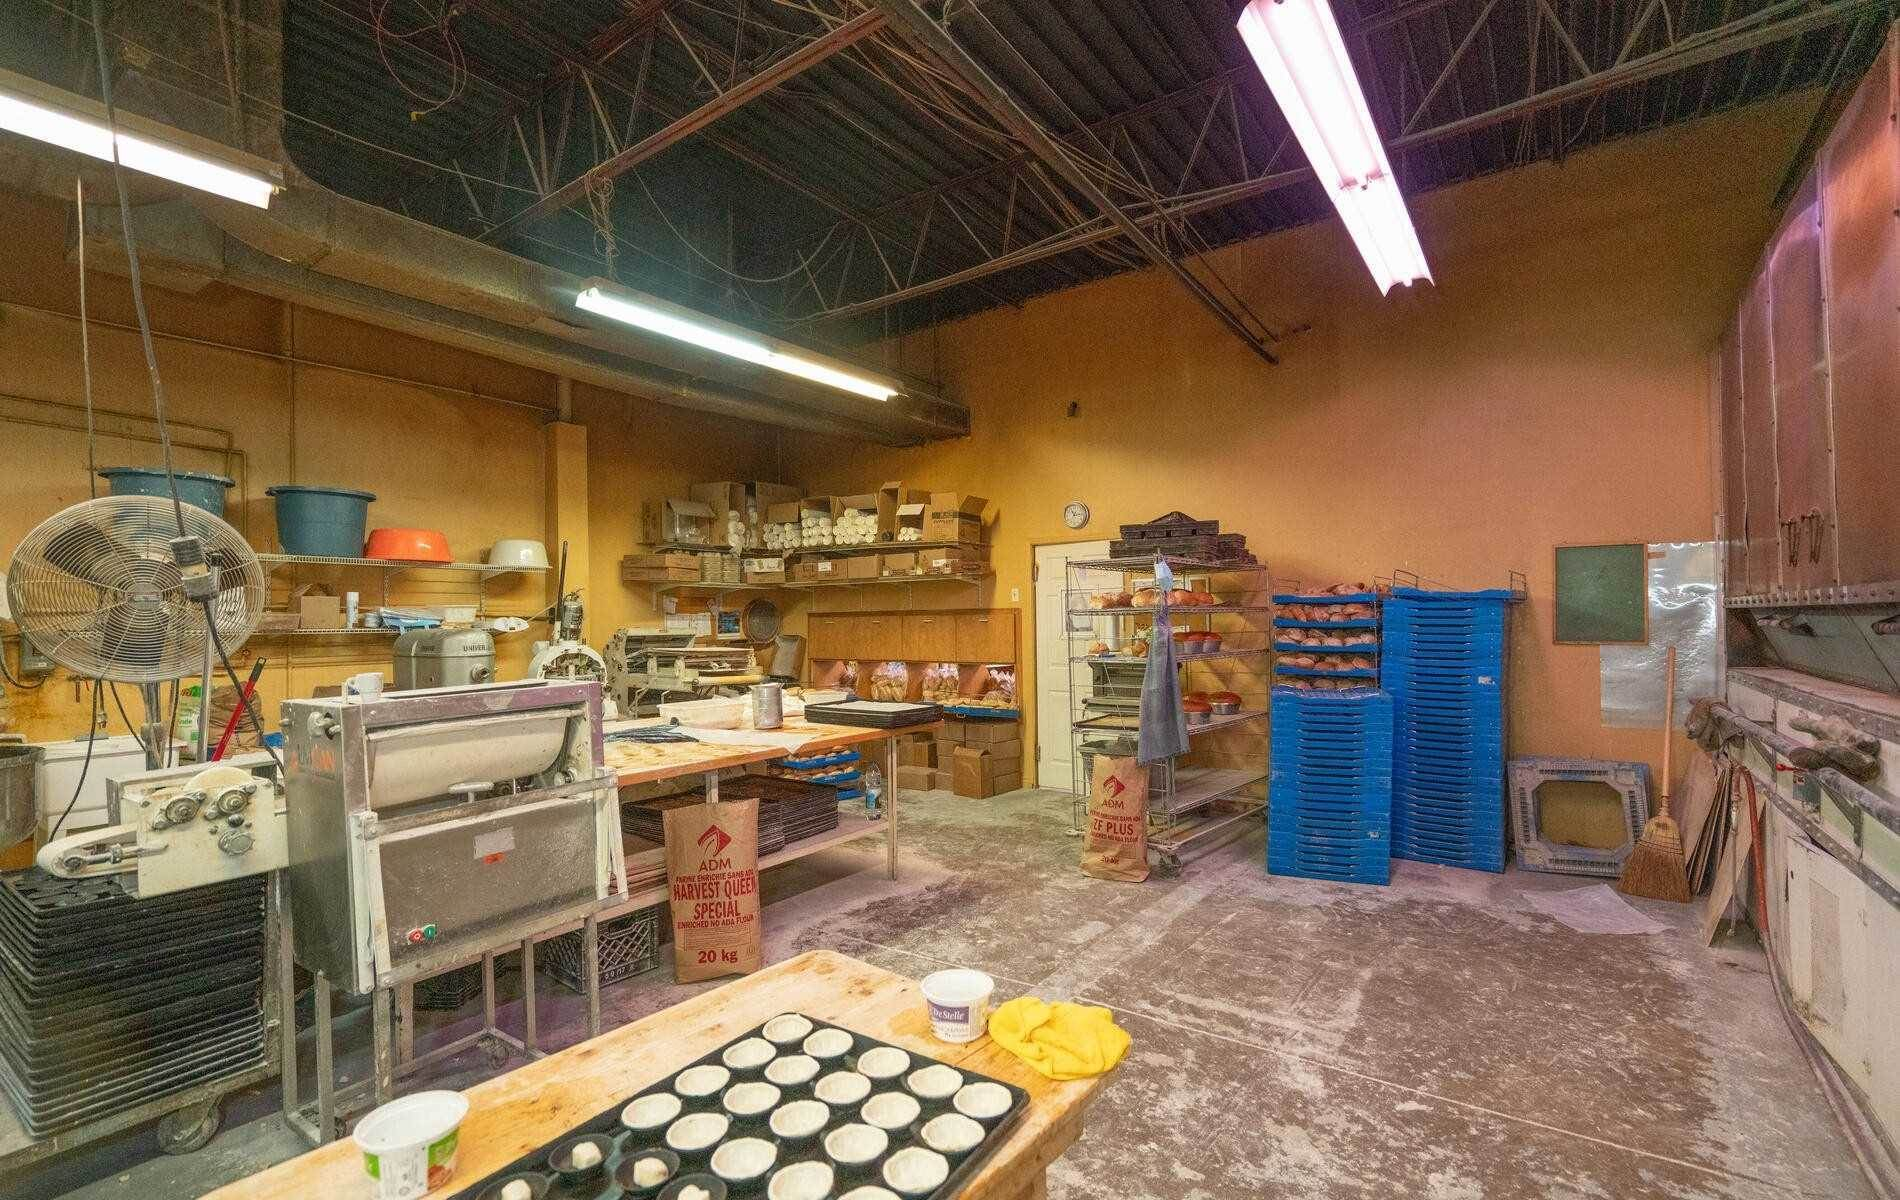 4 Mclaughlin Rd S in Brampton - Commercial For Sale : MLS# w5140894 Photo 12